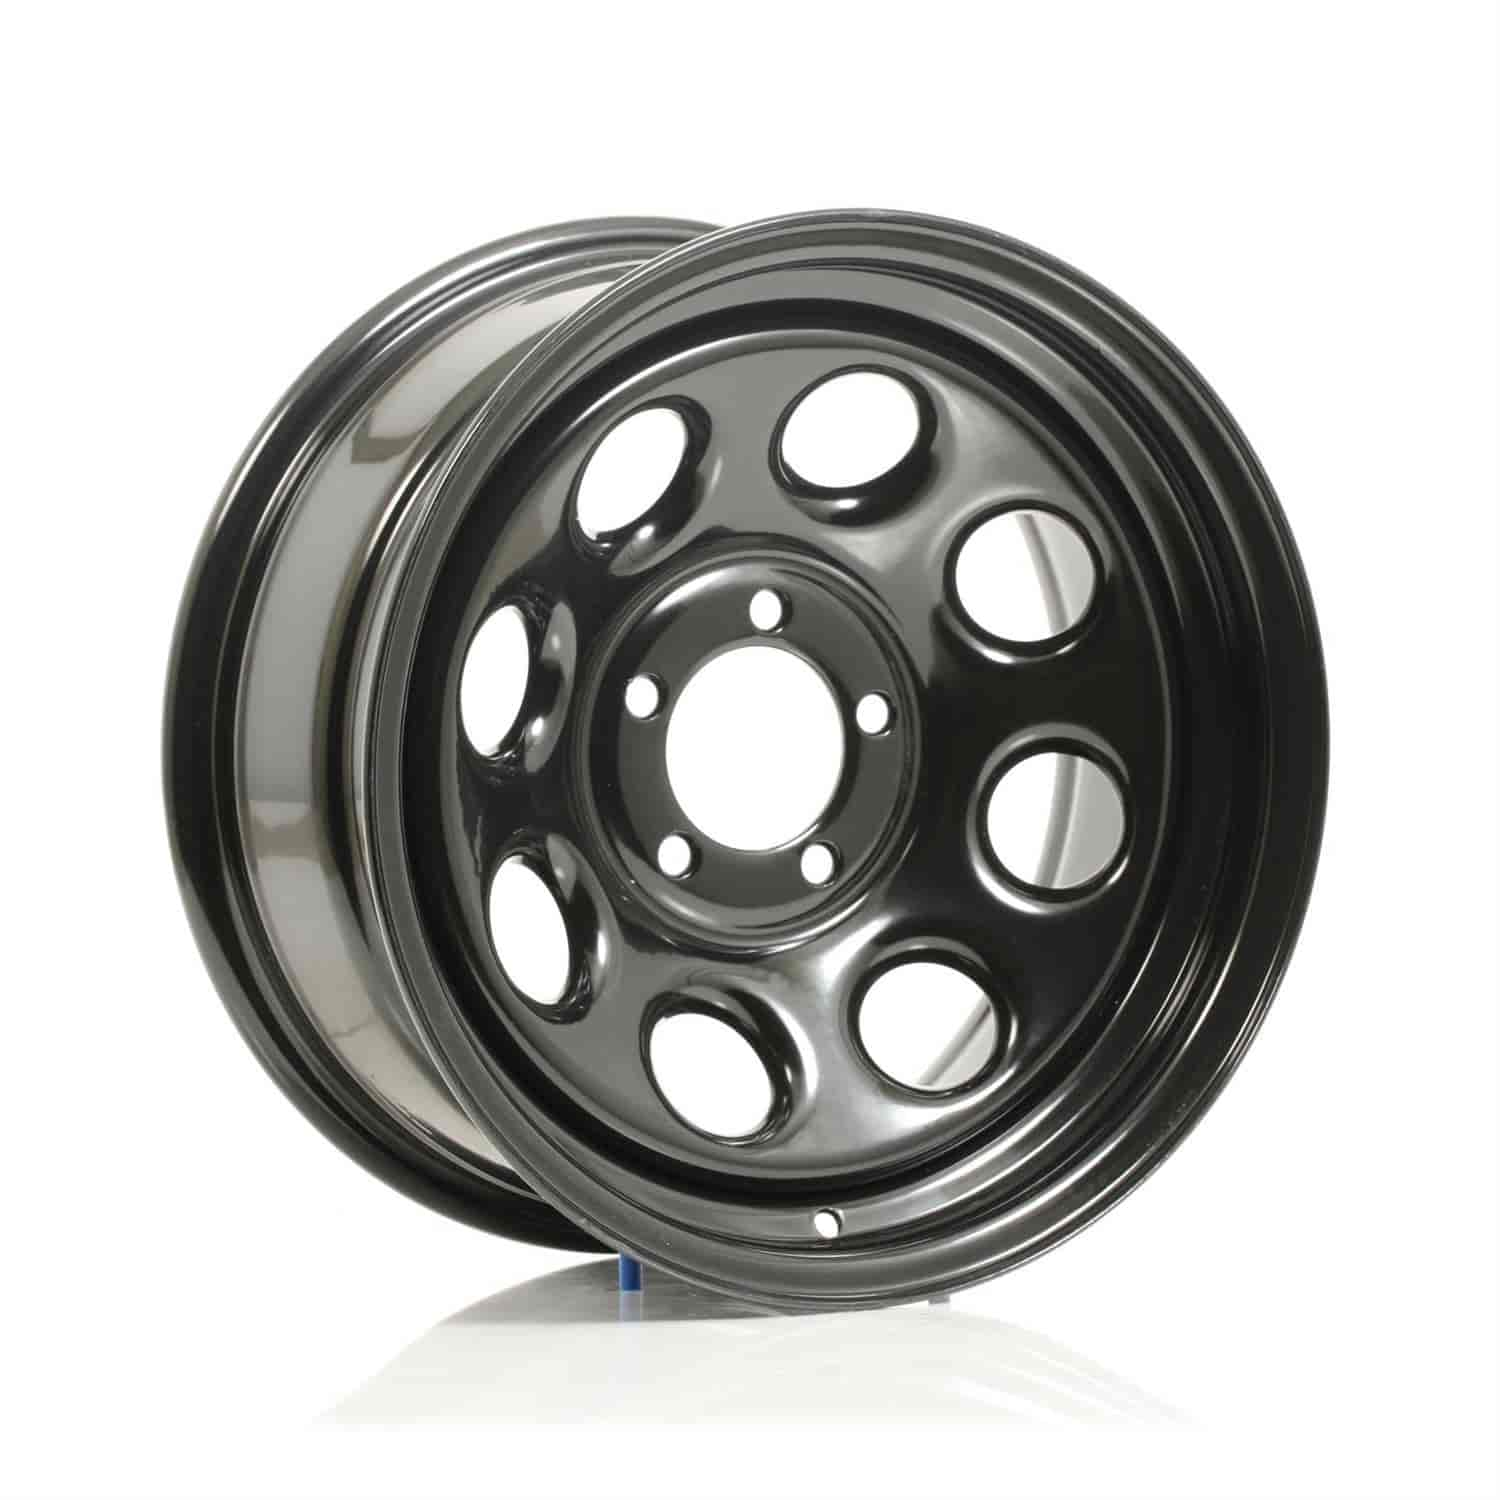 Cragar 3977735 - Cragar Black Soft 8 Wheels